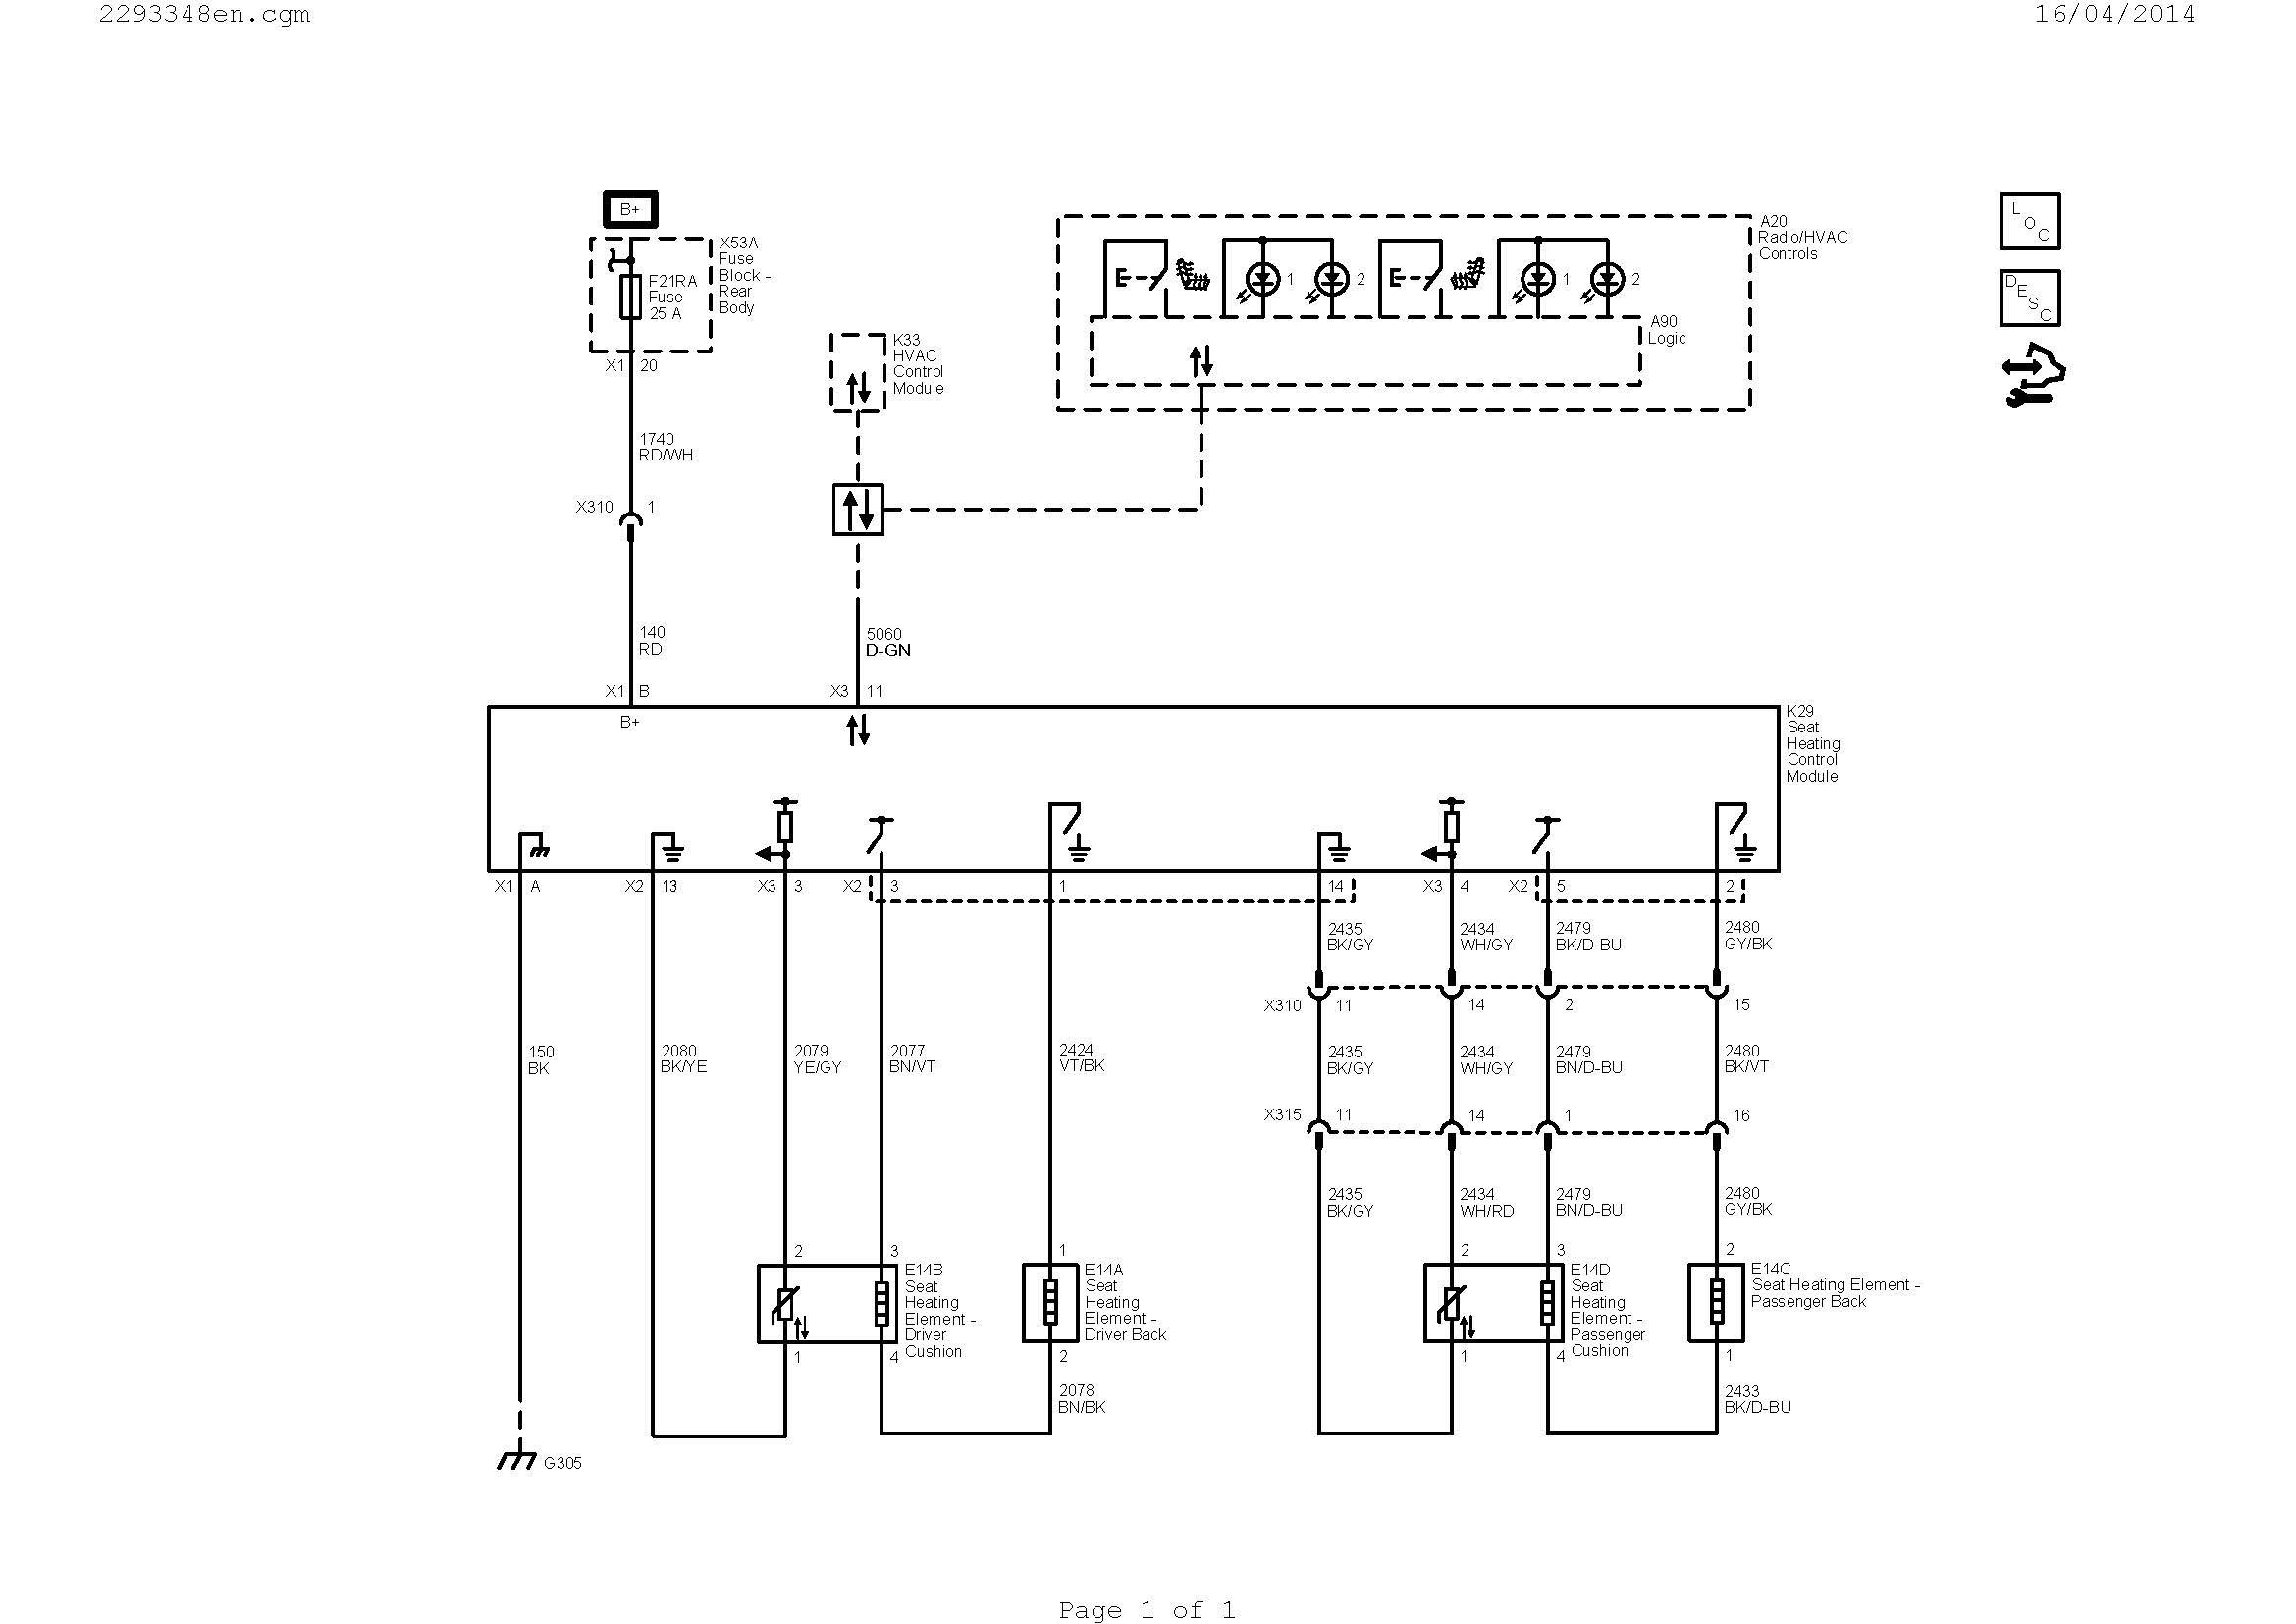 snow plow wiring diagram Collection-7 wire thermostat wiring diagram Download Wiring A Ac Thermostat Diagram New Wiring Diagram Ac 20-j